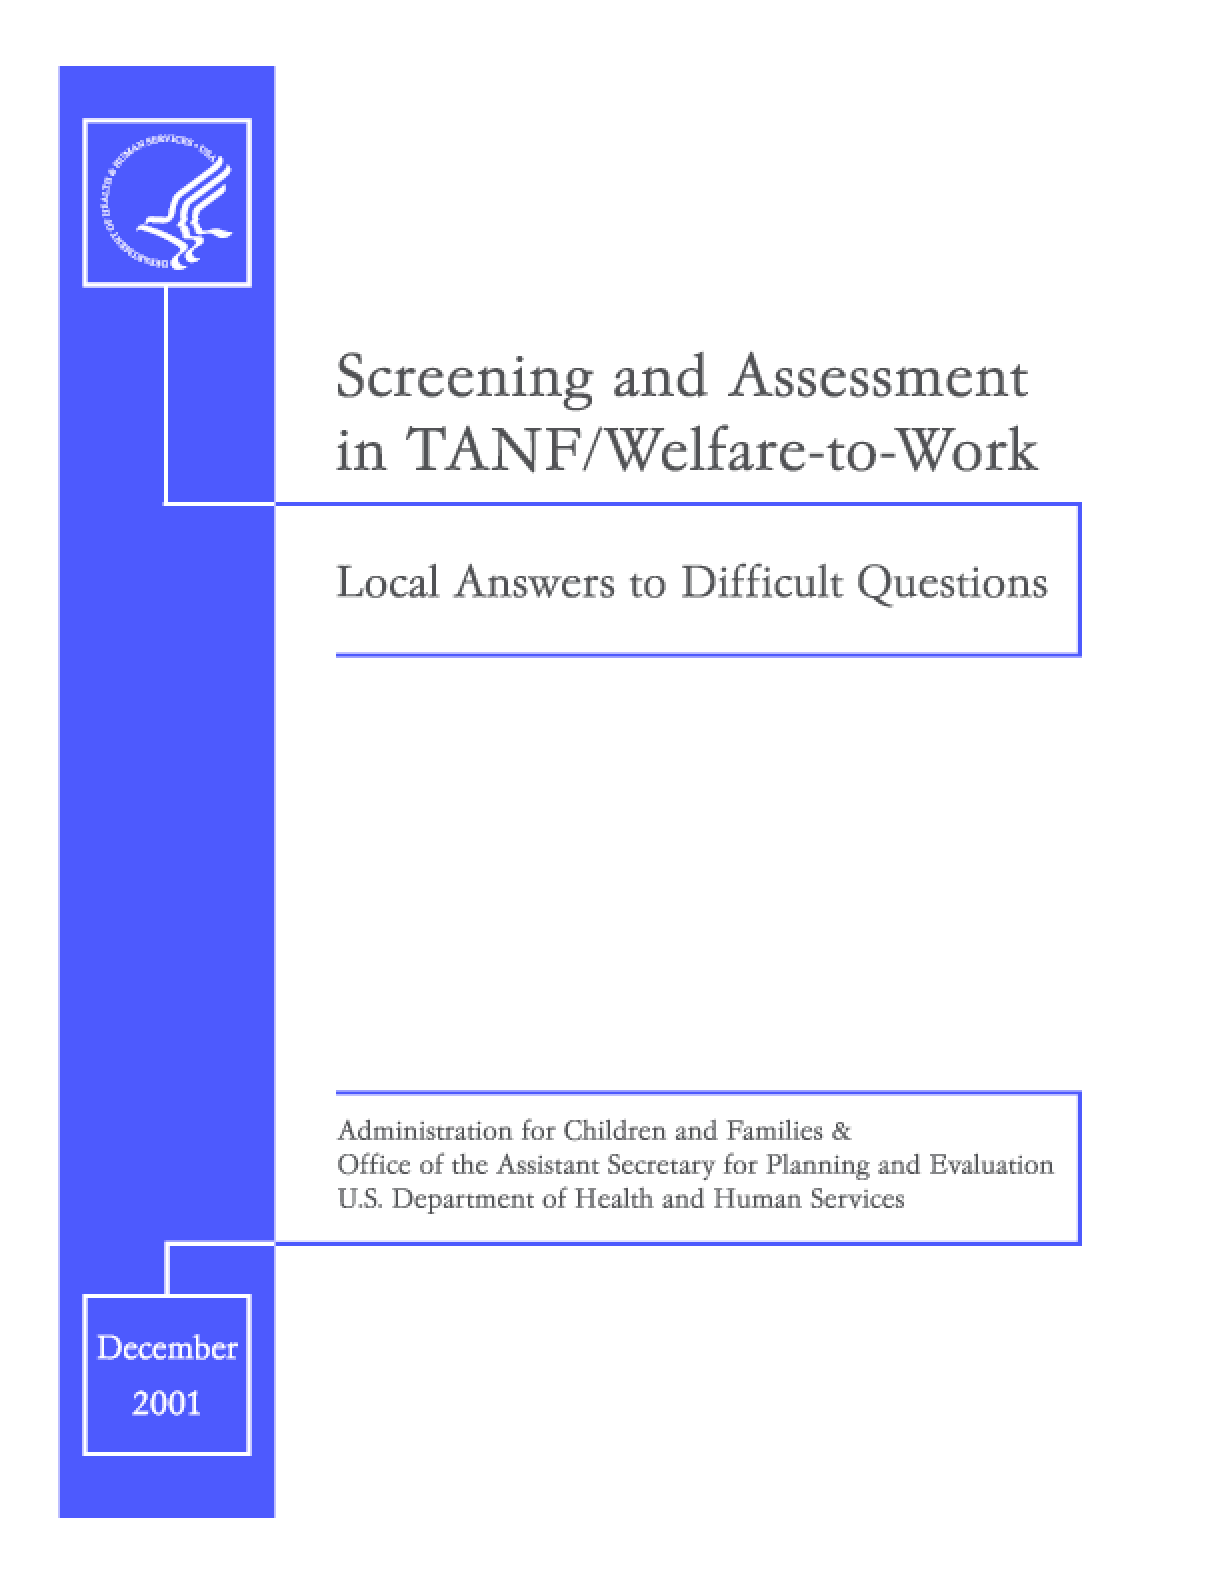 Screening and Assessment in TANF/Welfare-to-Work: Local Answers to Difficult Questions